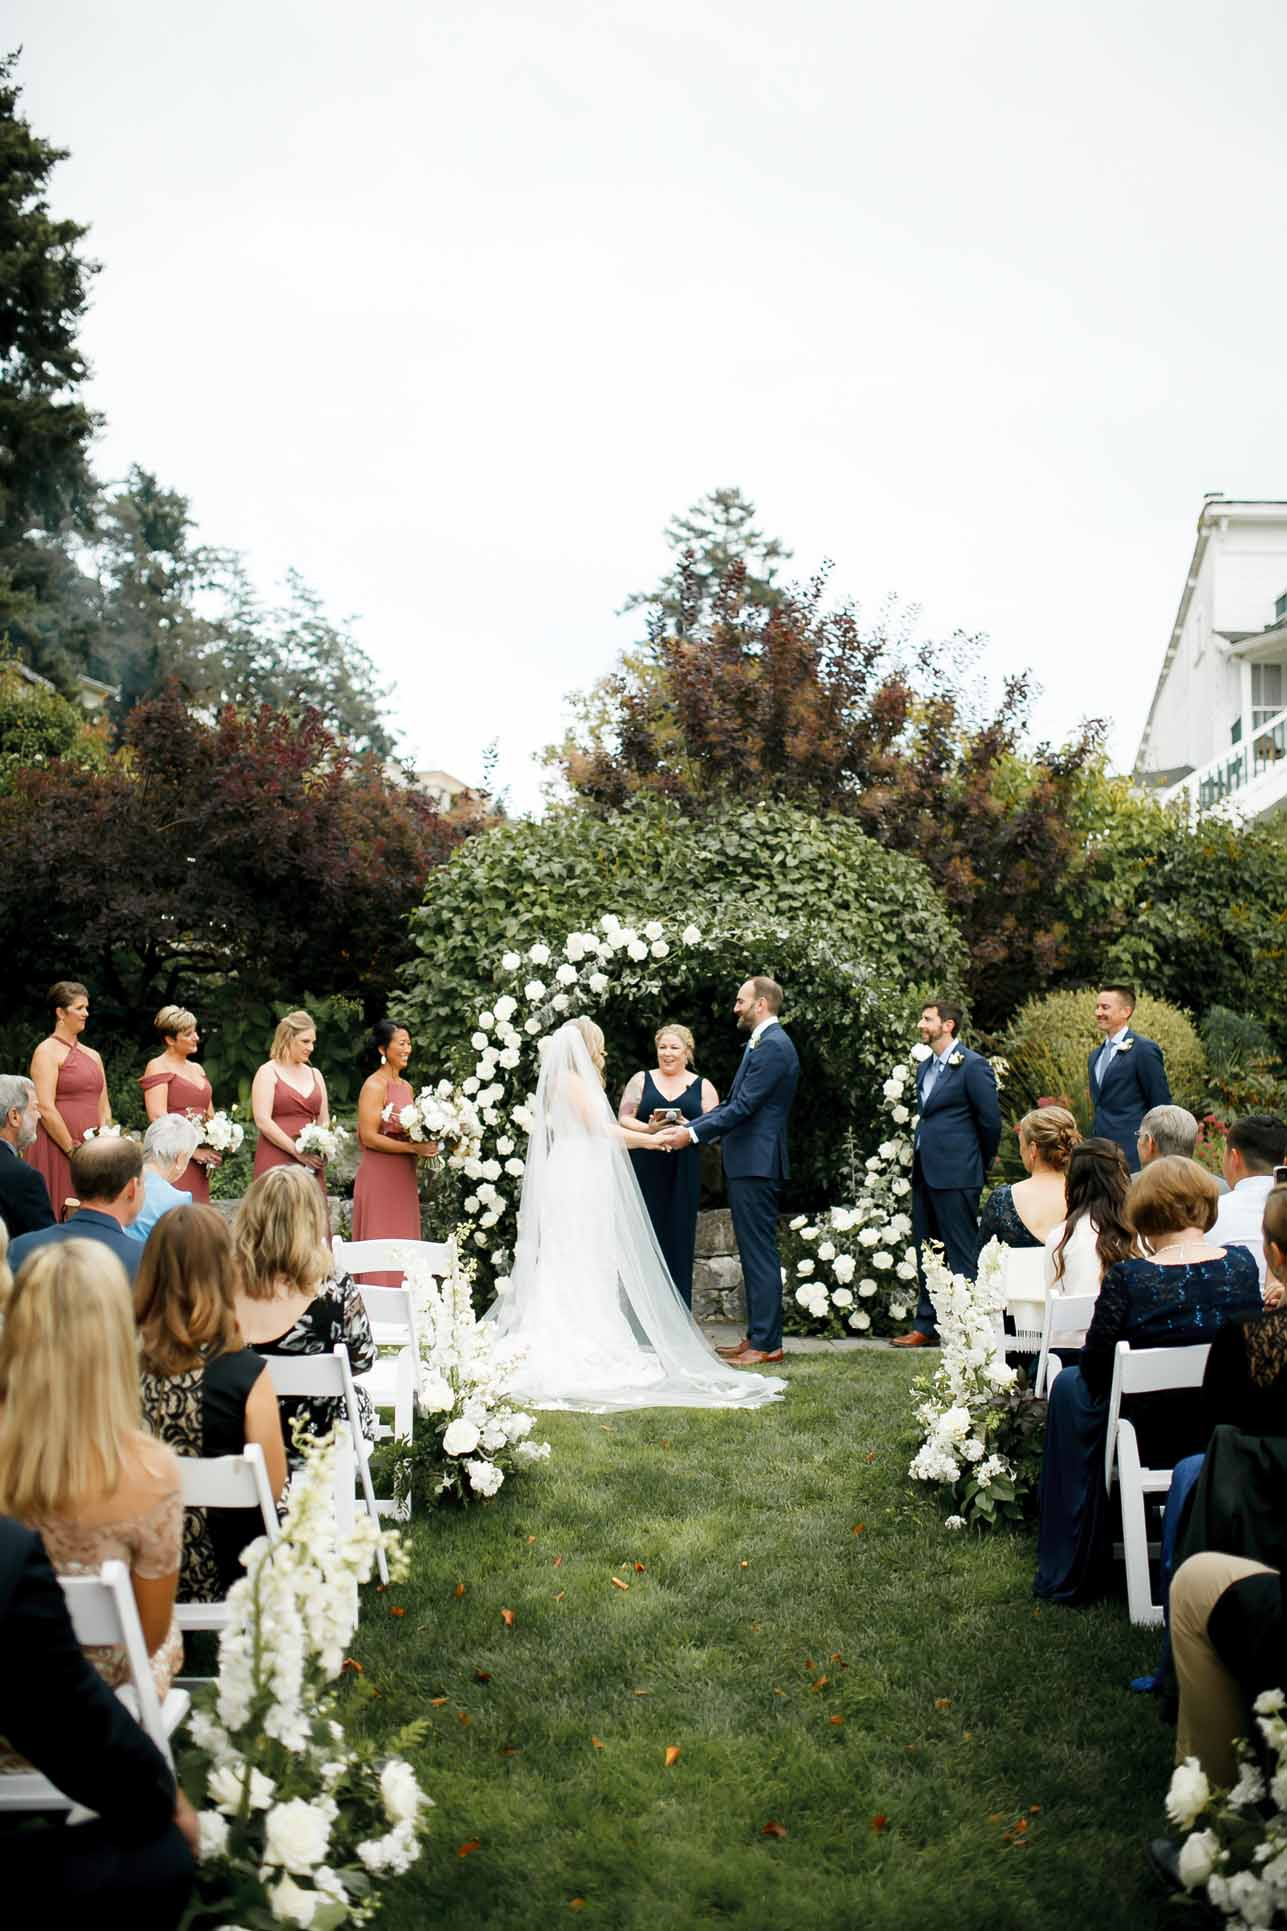 Wedding ceremony in front of white floral arch